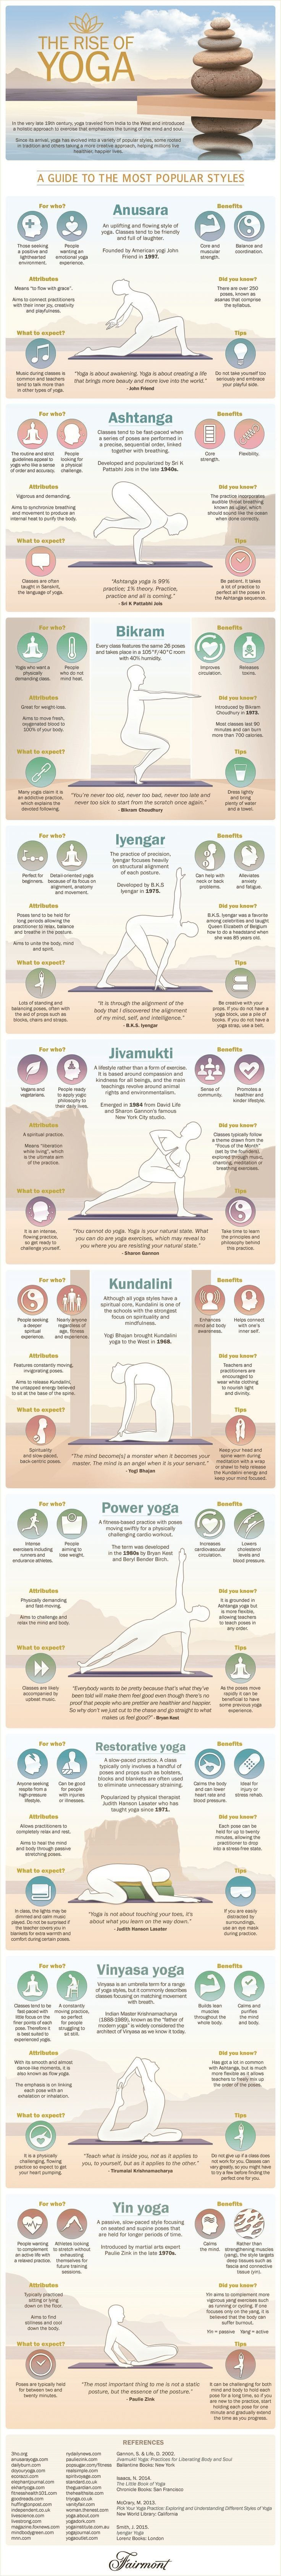 Discover more about yoga styles!